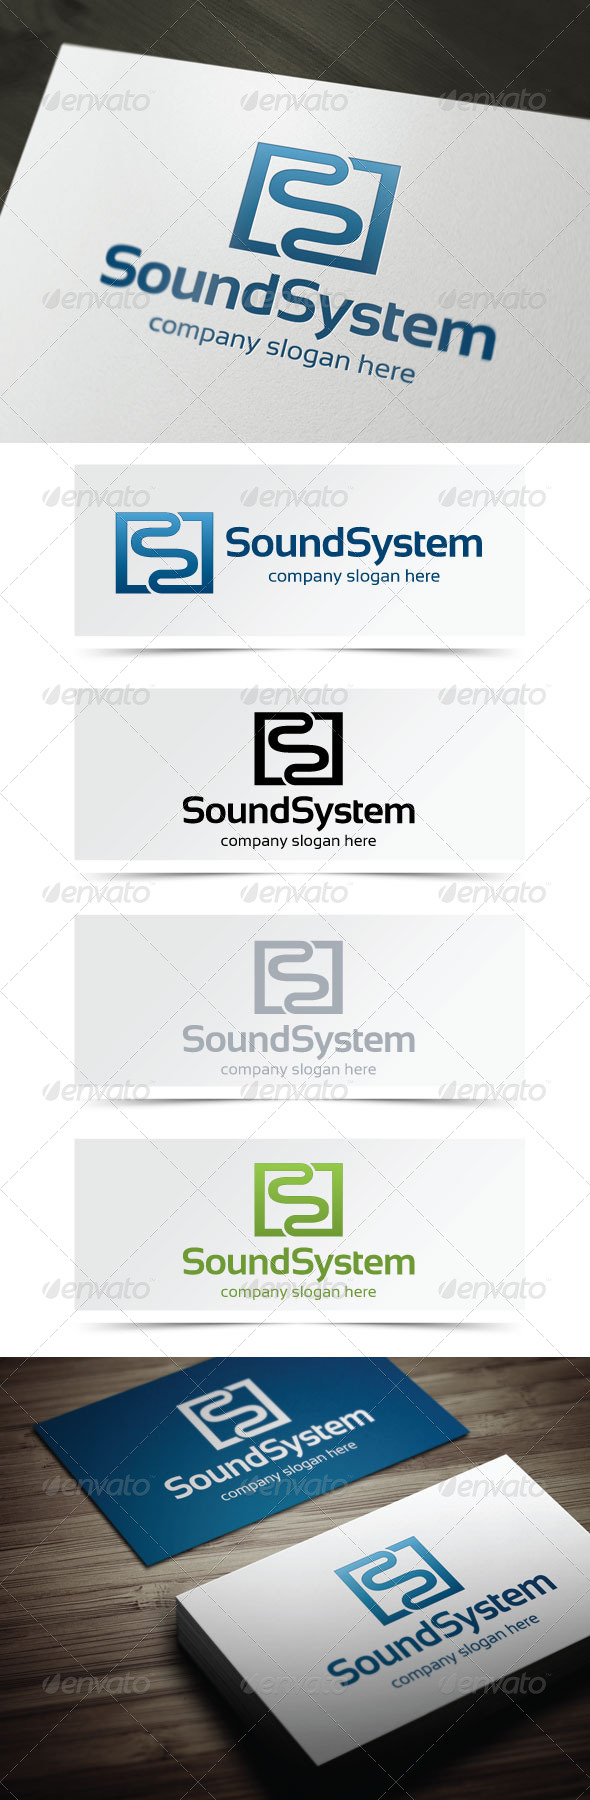 Sound System - Letters Logo Templates